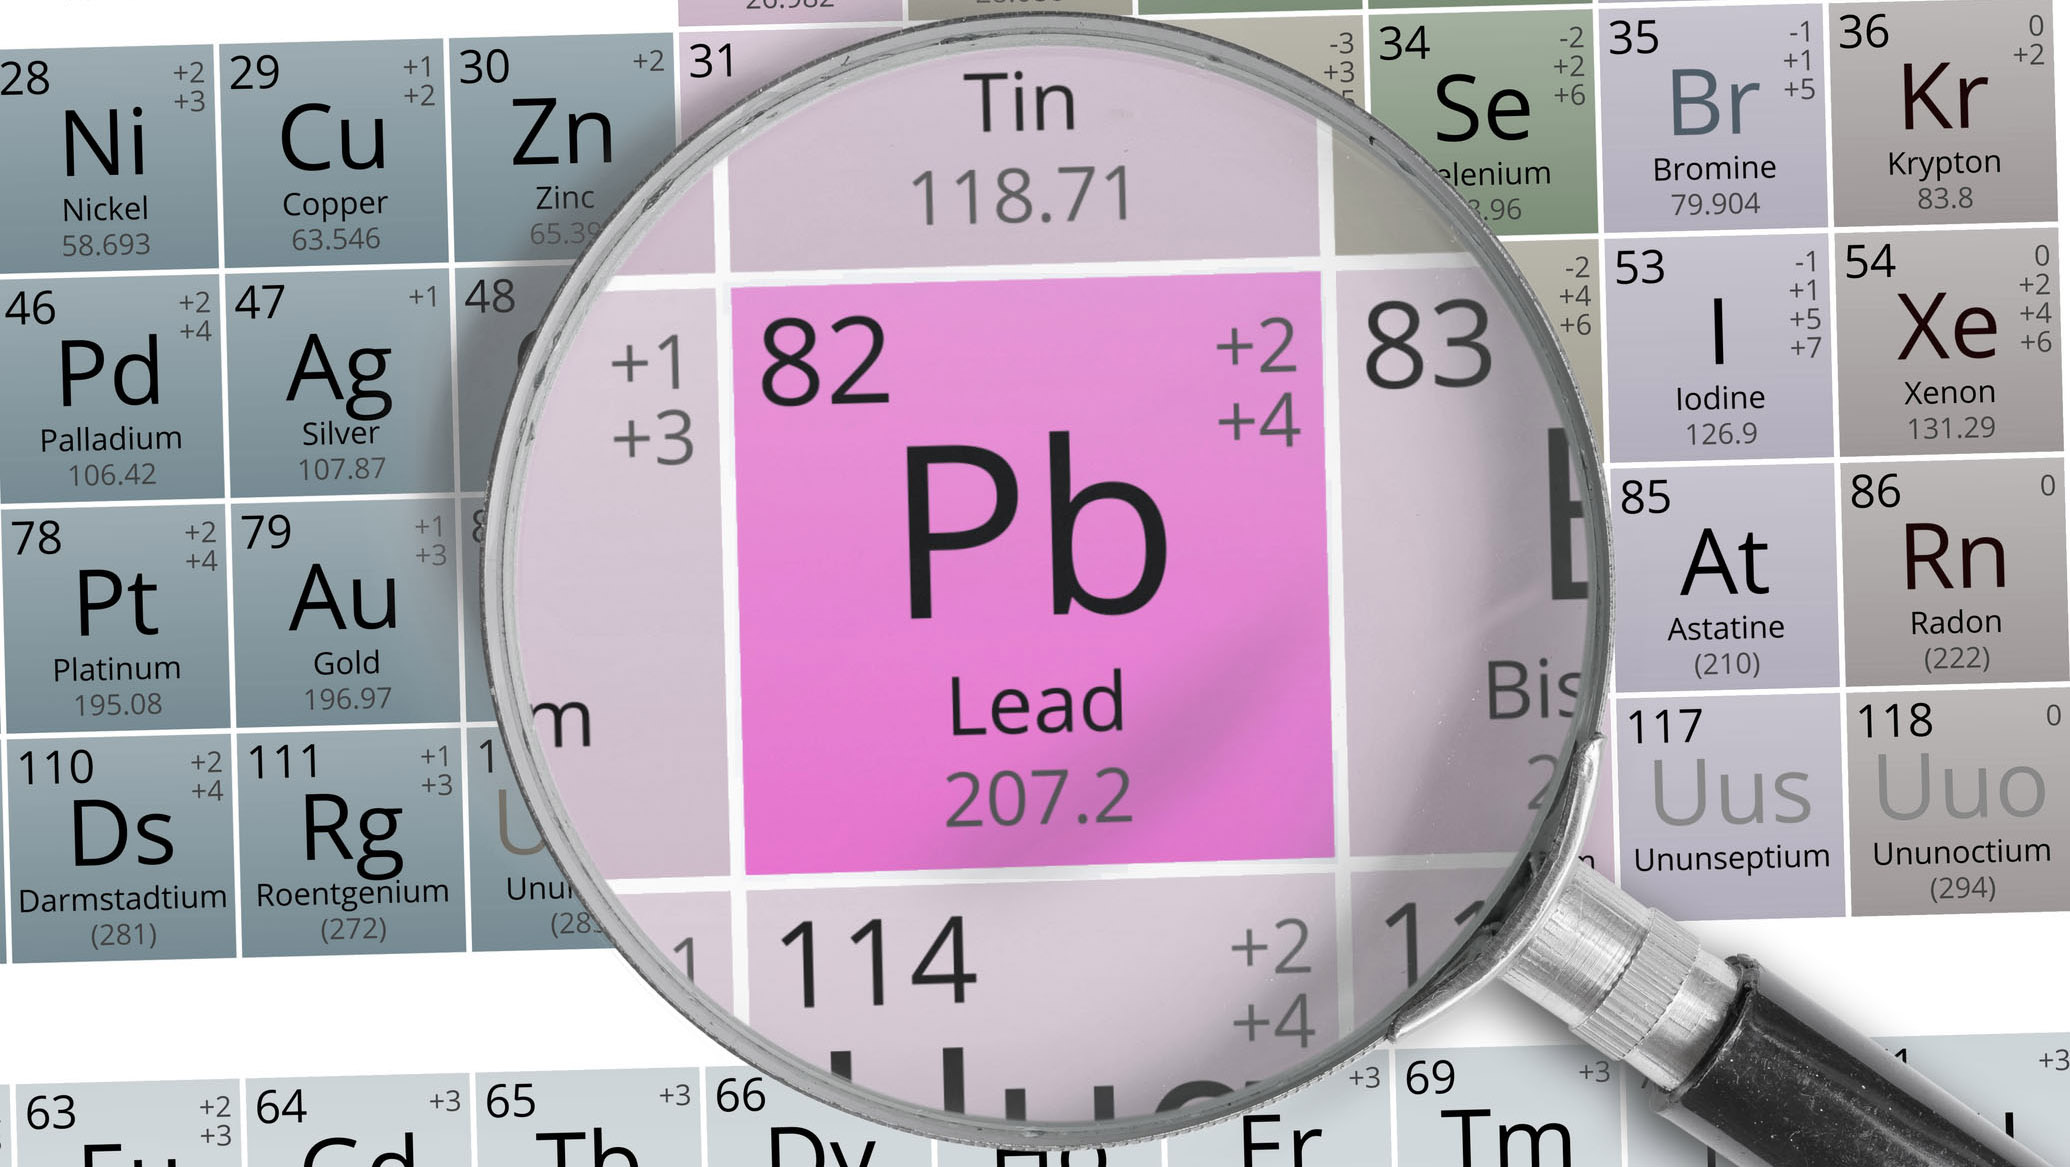 Magnifying glass over Lead on the periodic table